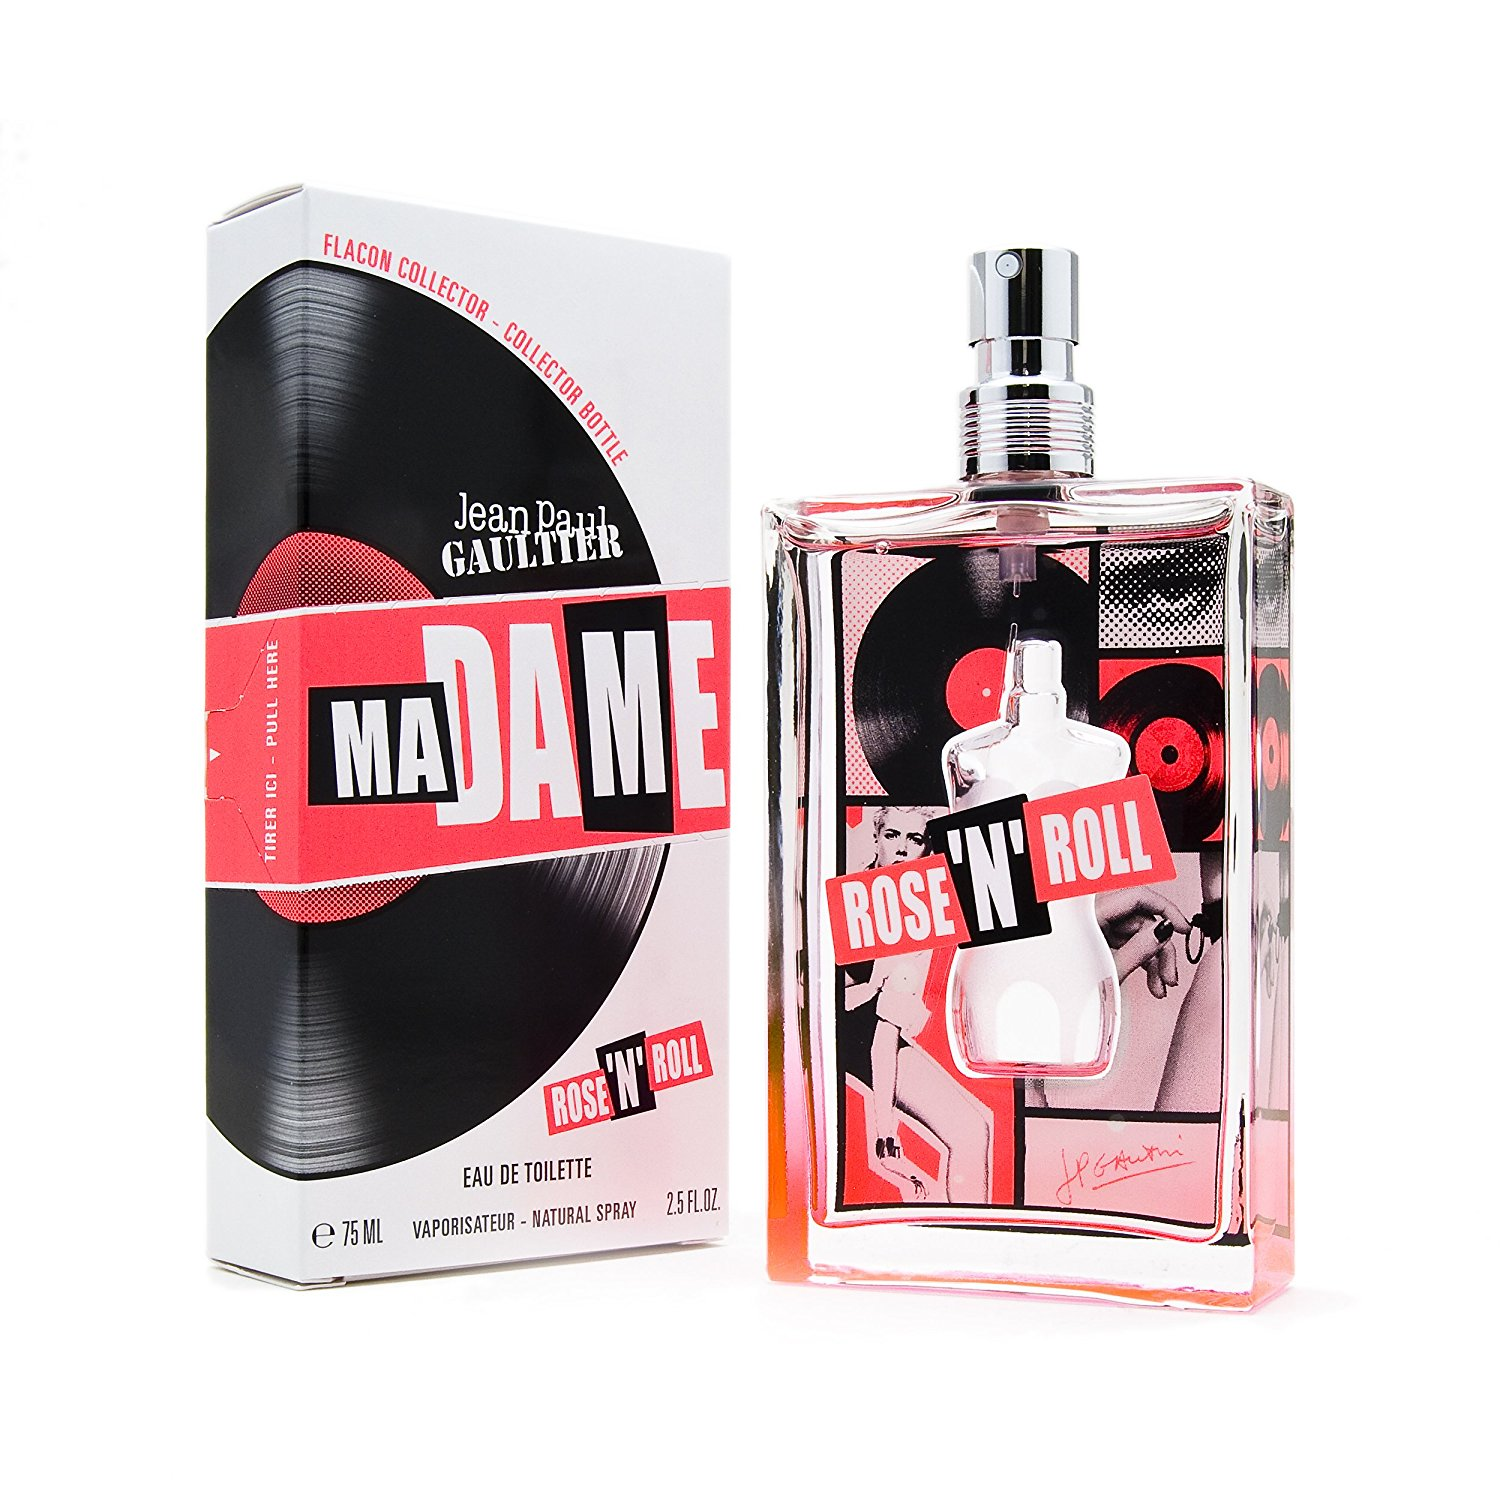 Madame Rose 'N' Roll By Jean Paul Gaultier For Women. Eau De Toilette Spray 2.5 Oz / 75 Ml